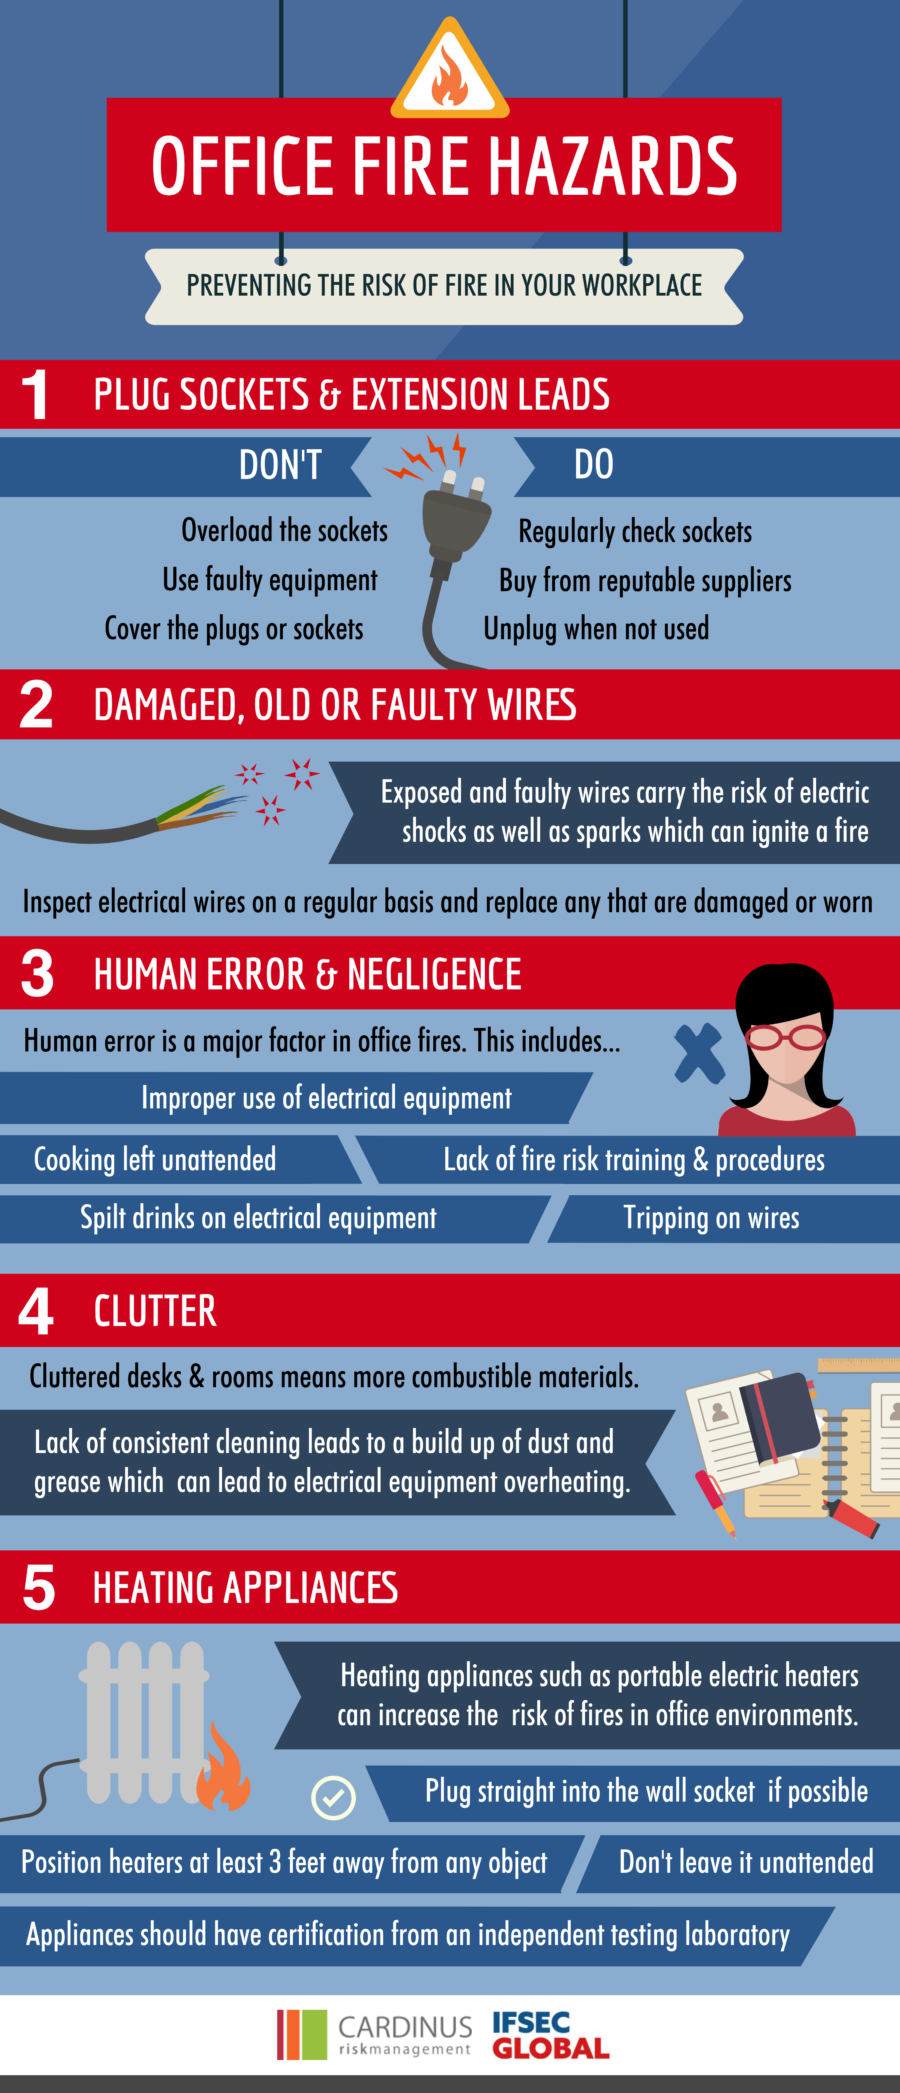 Office fire hazards infographic